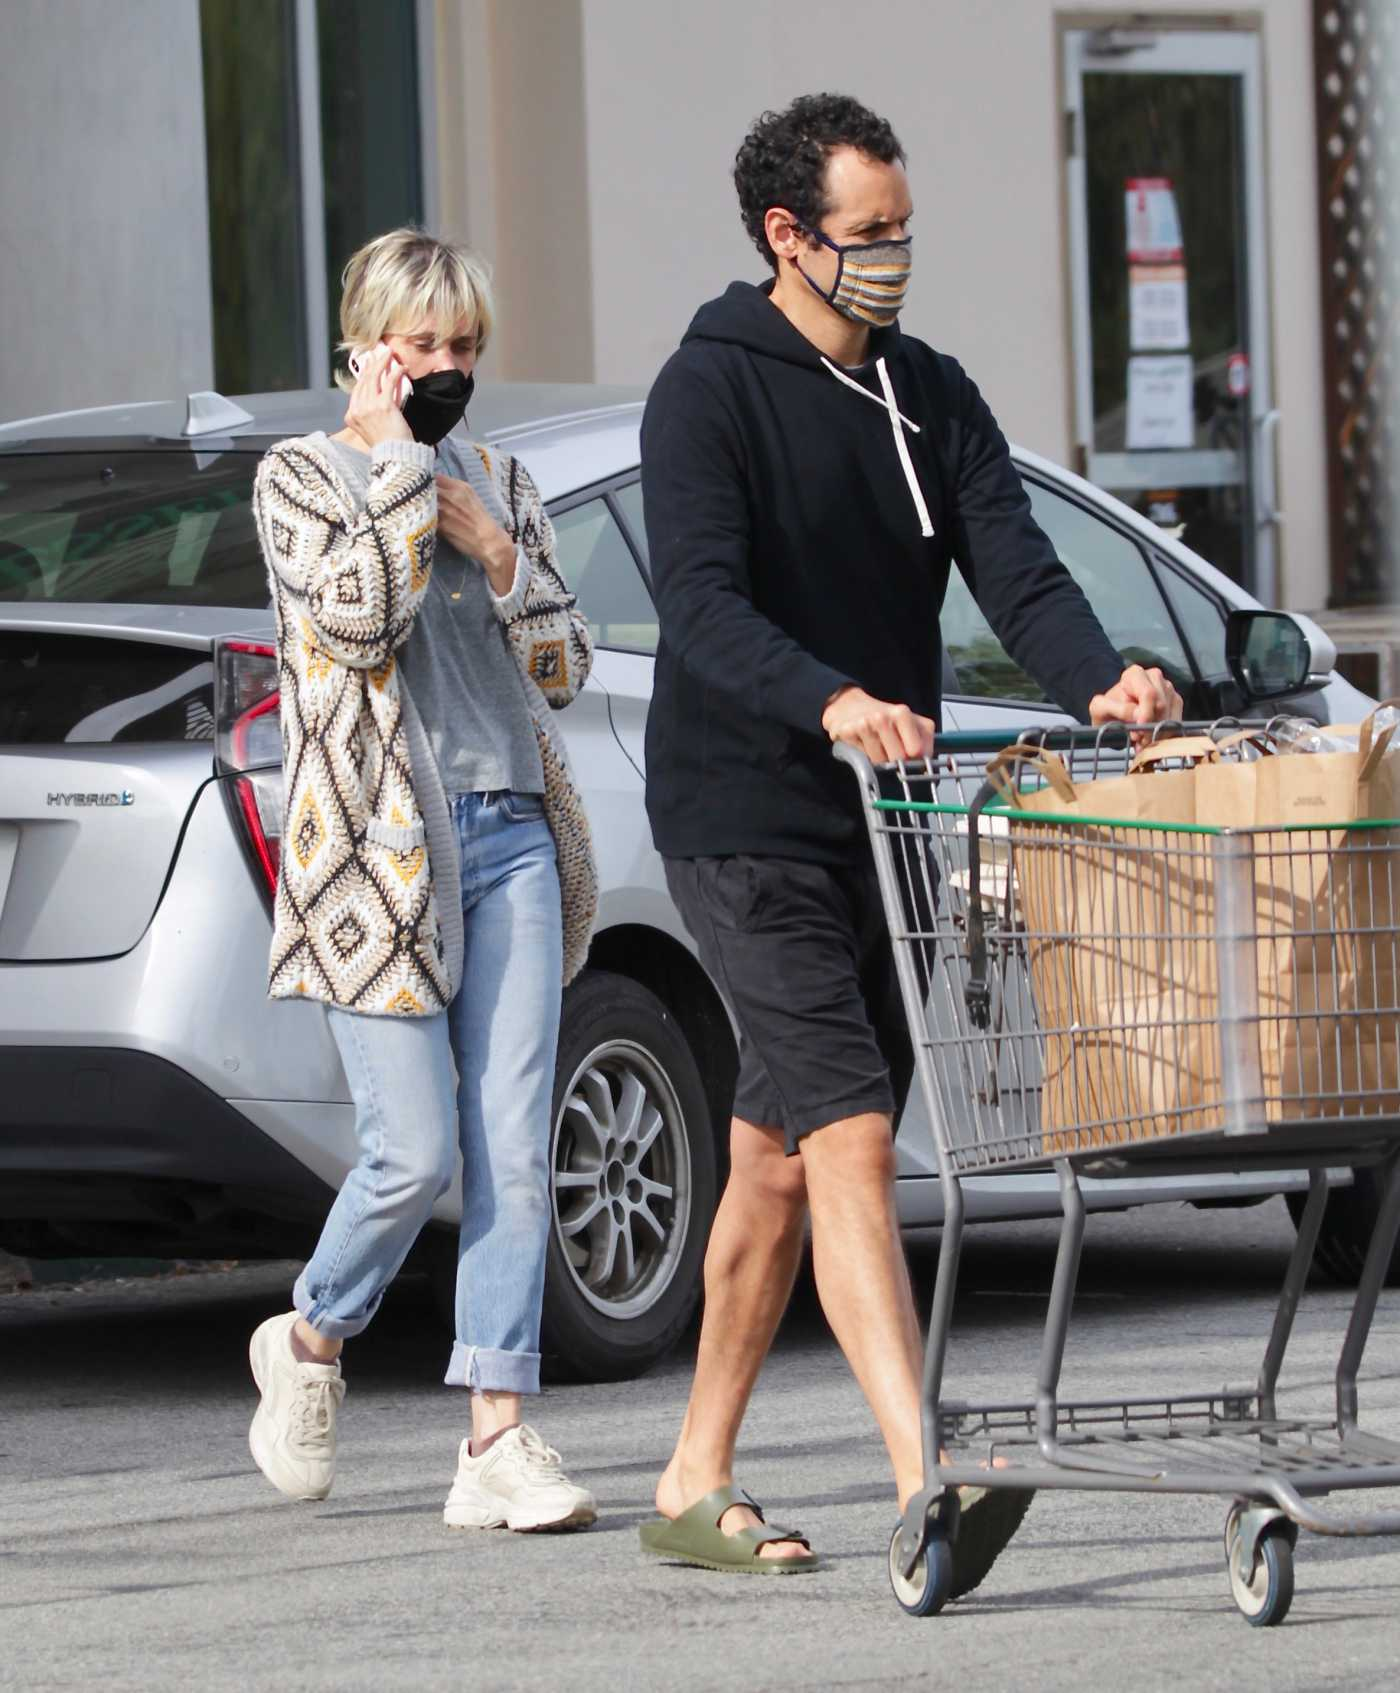 Kristen Wiig in a Black Face Mask Goes Shopping at Erewhon Supermarket in Calabasas 04/30/2020